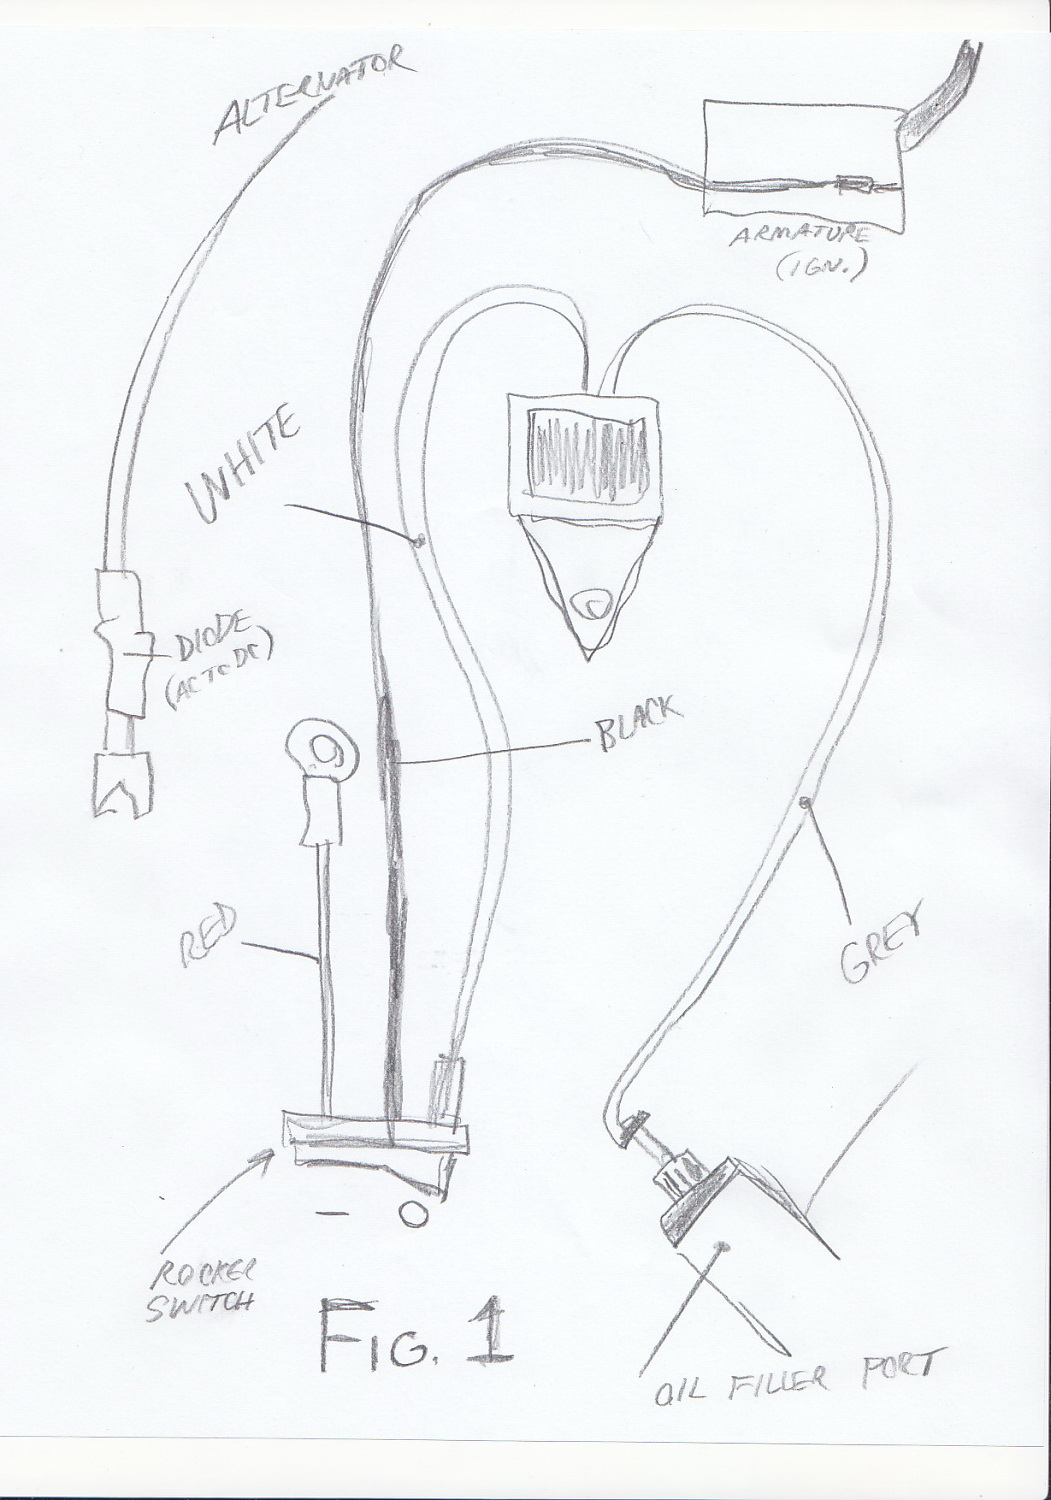 I Need A Wiring Diagram For A Series 250cc